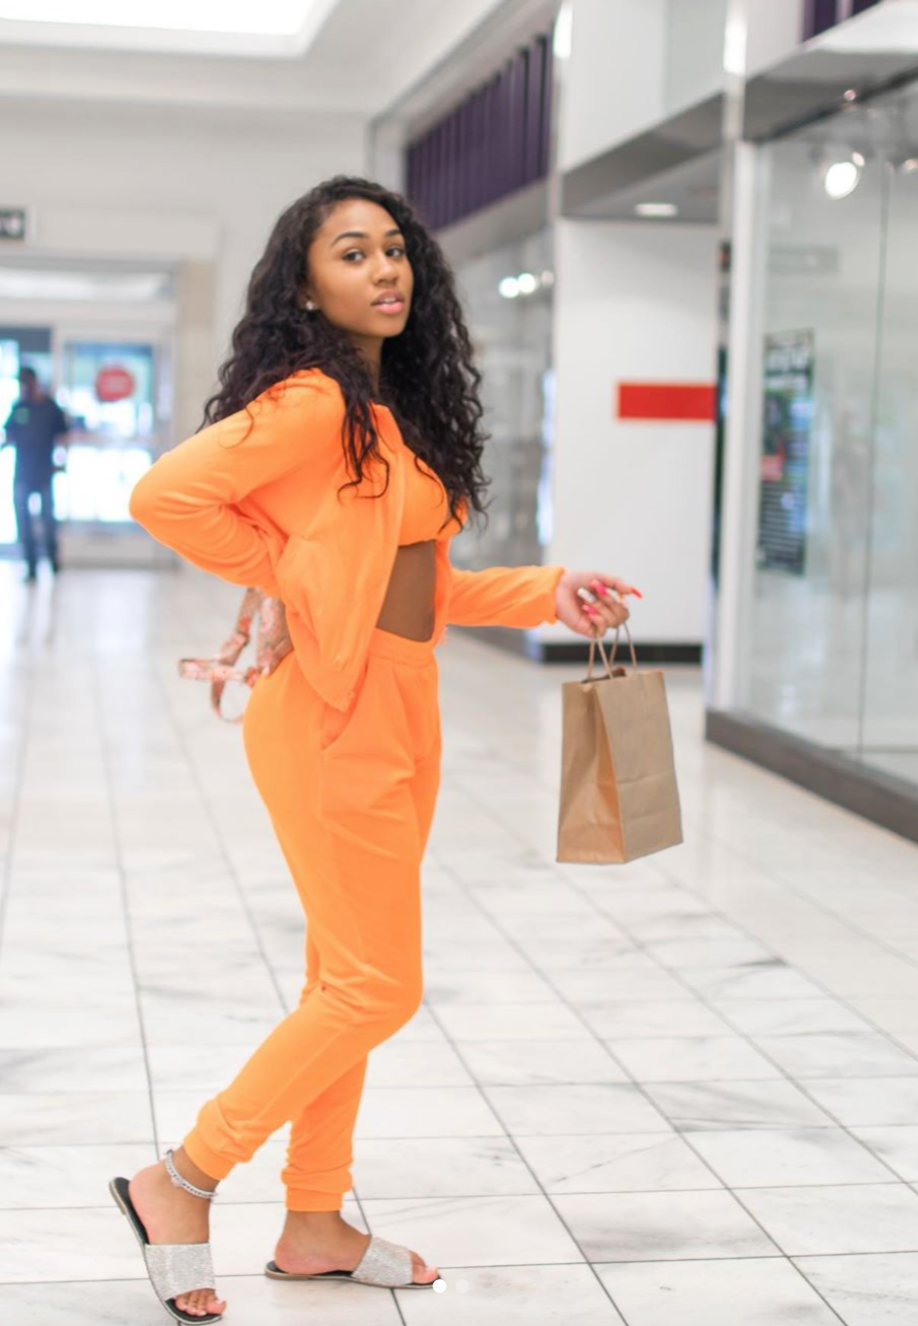 Girl standing while wearing a bright orange sweatsuit